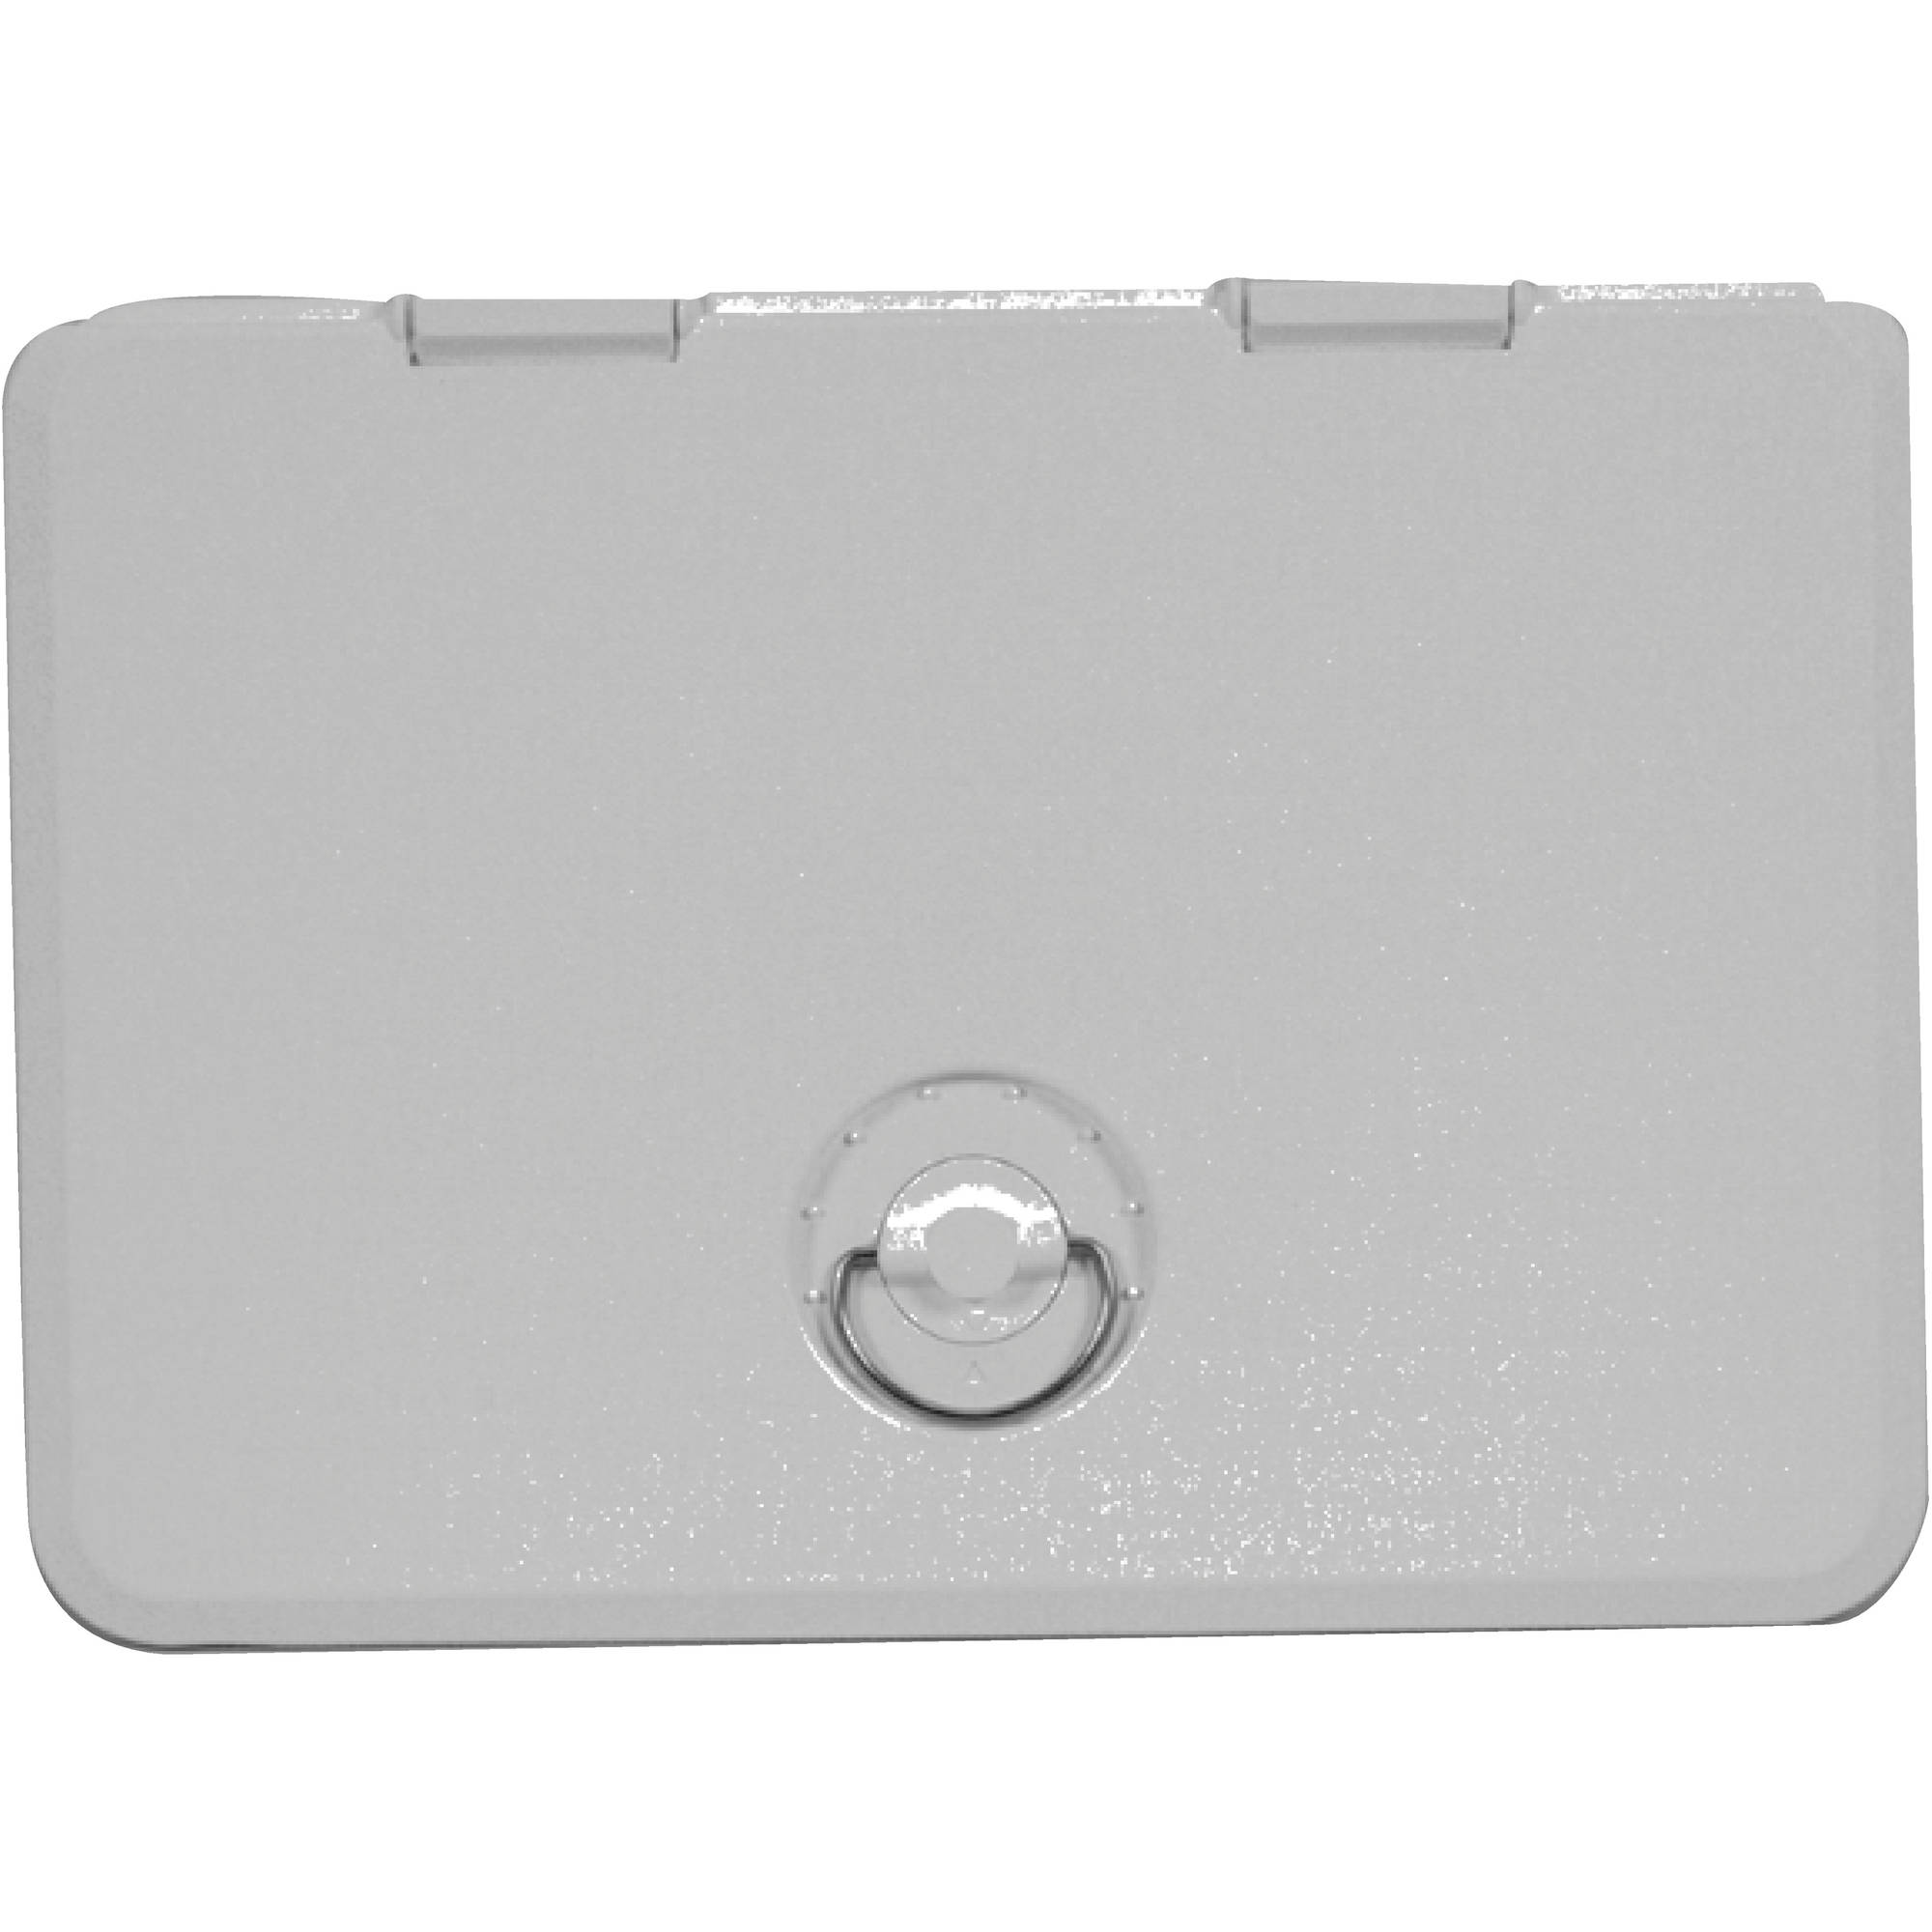 "Click here to buy T-H Marine Sure-Seal Non-Locking Access Hatch, 13"" x 23-1 4"" by T-H Marine Supplies."